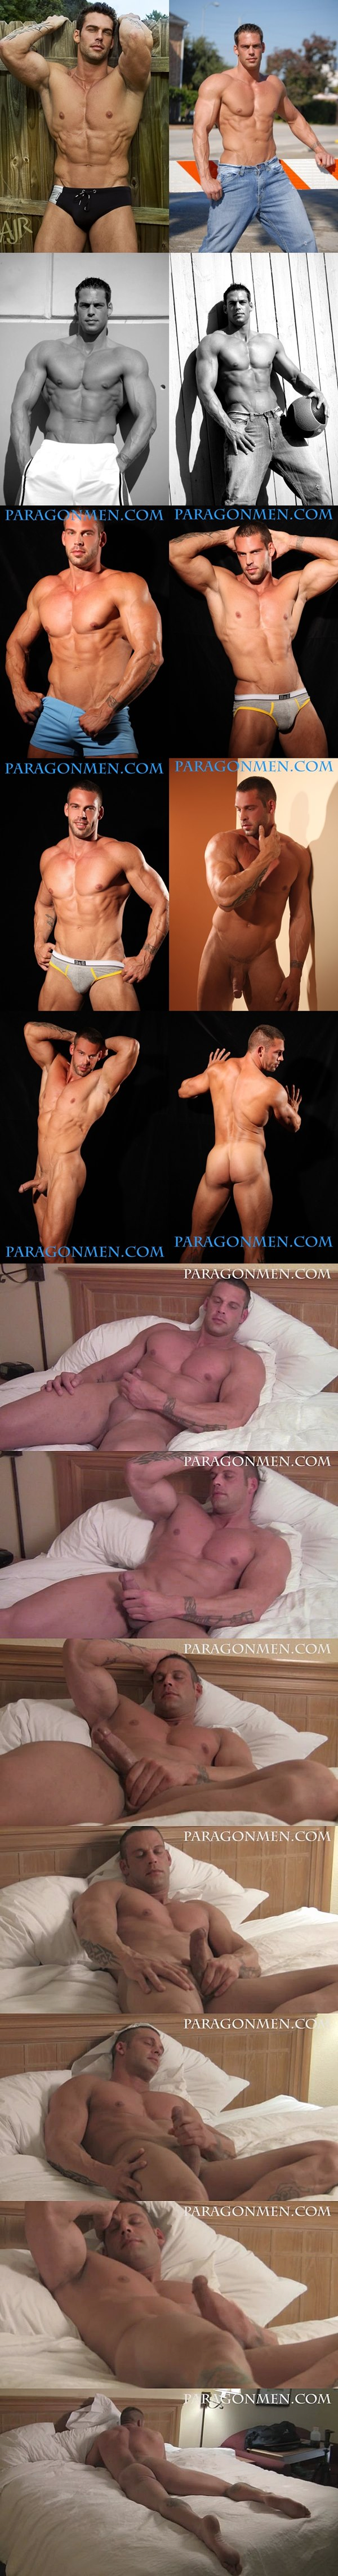 Man of the Year super handsome muscle hunk Trent West strokes his hard dick at Paragonmen 02